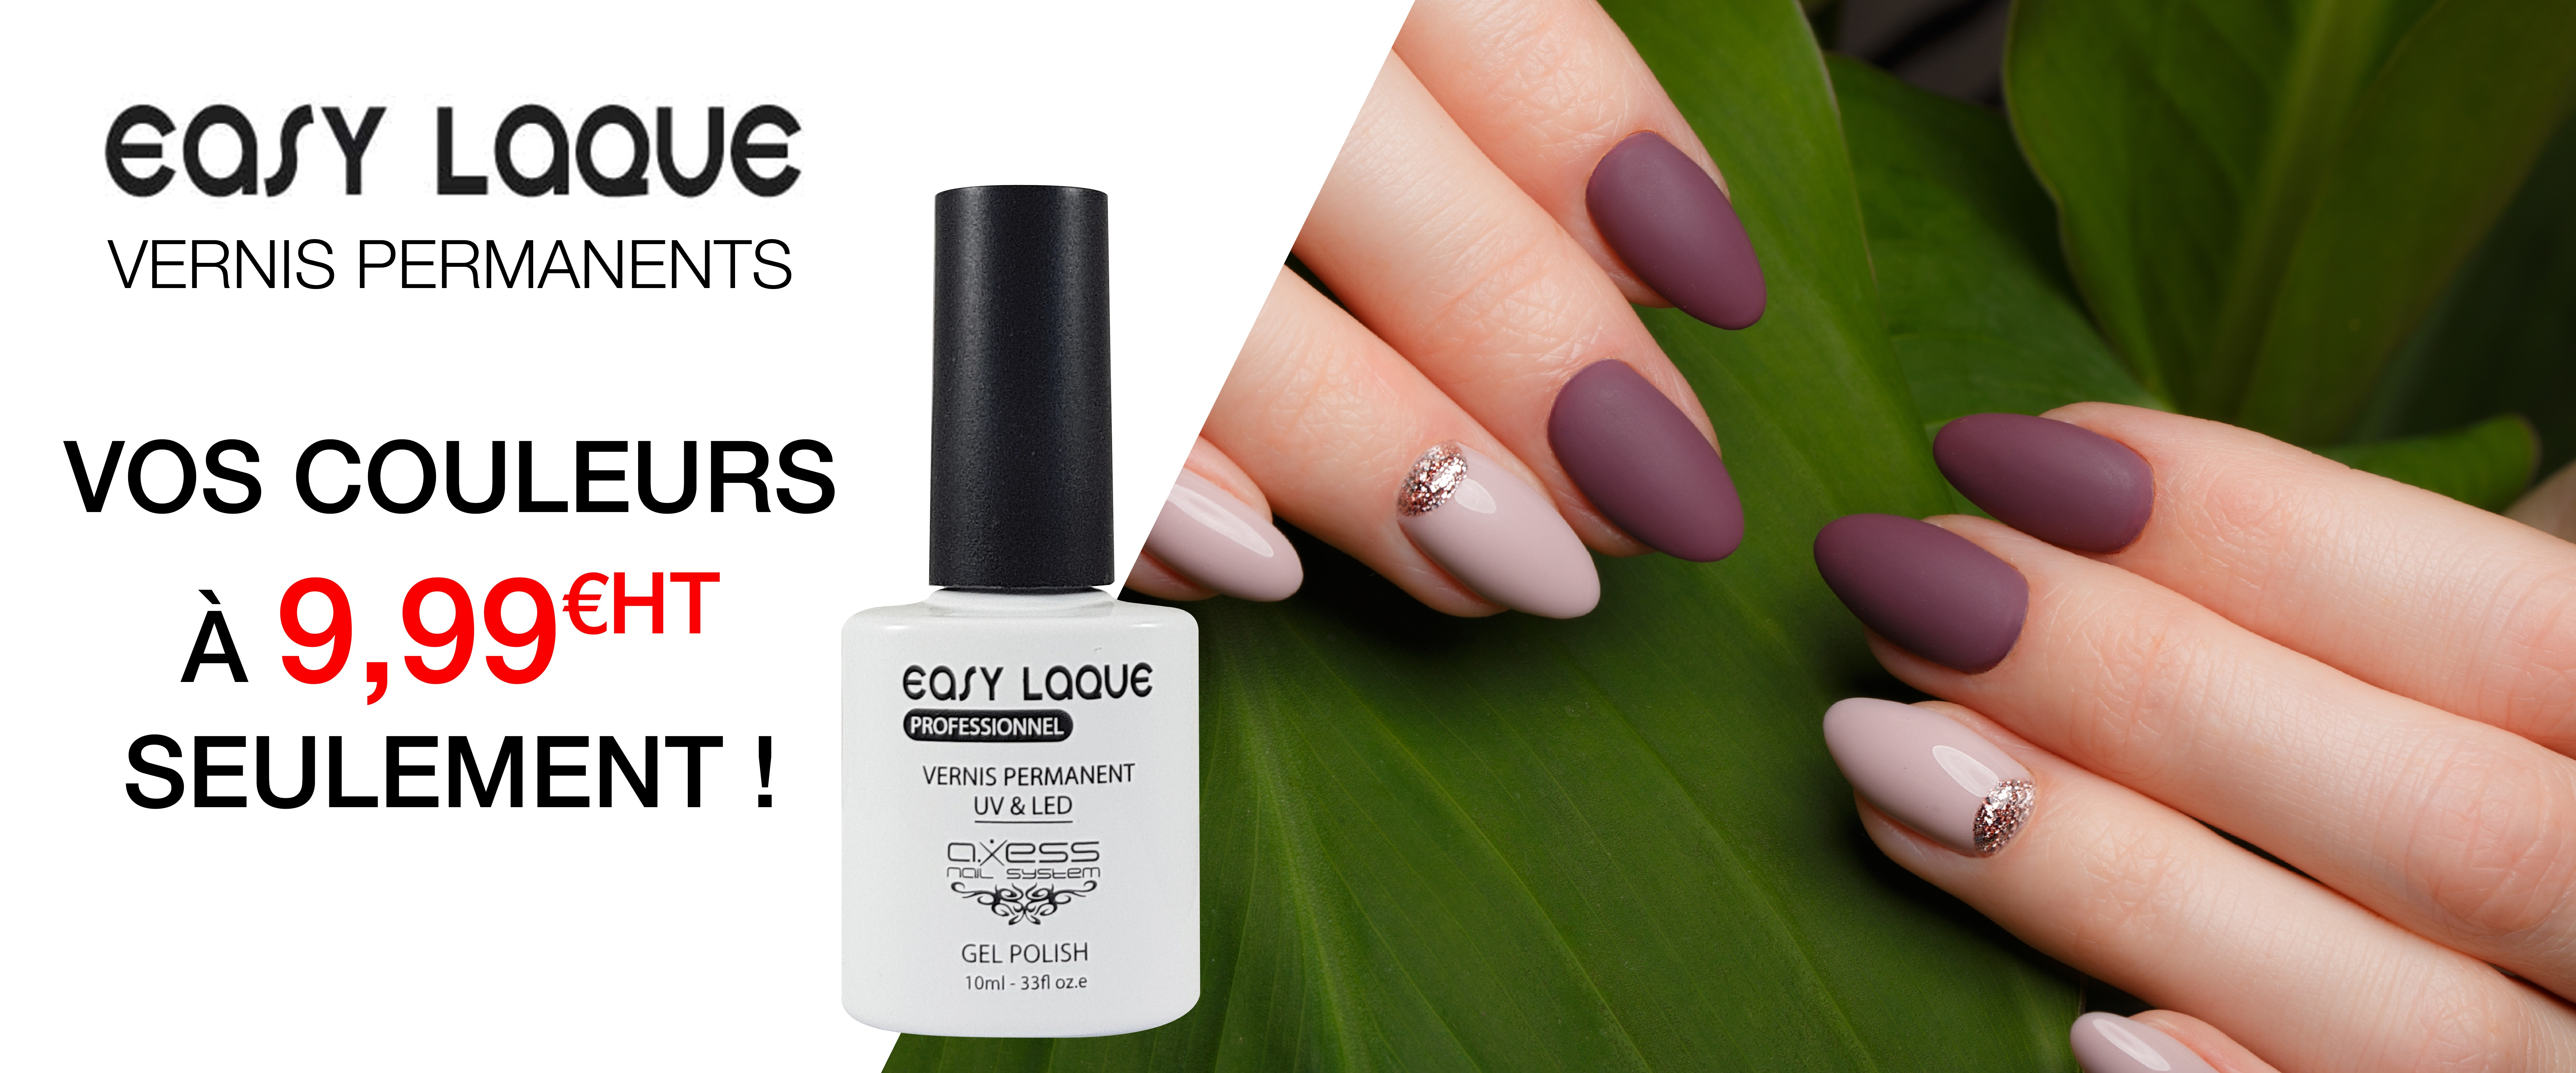 VERNIS PERMANENTS EASY LAQUE